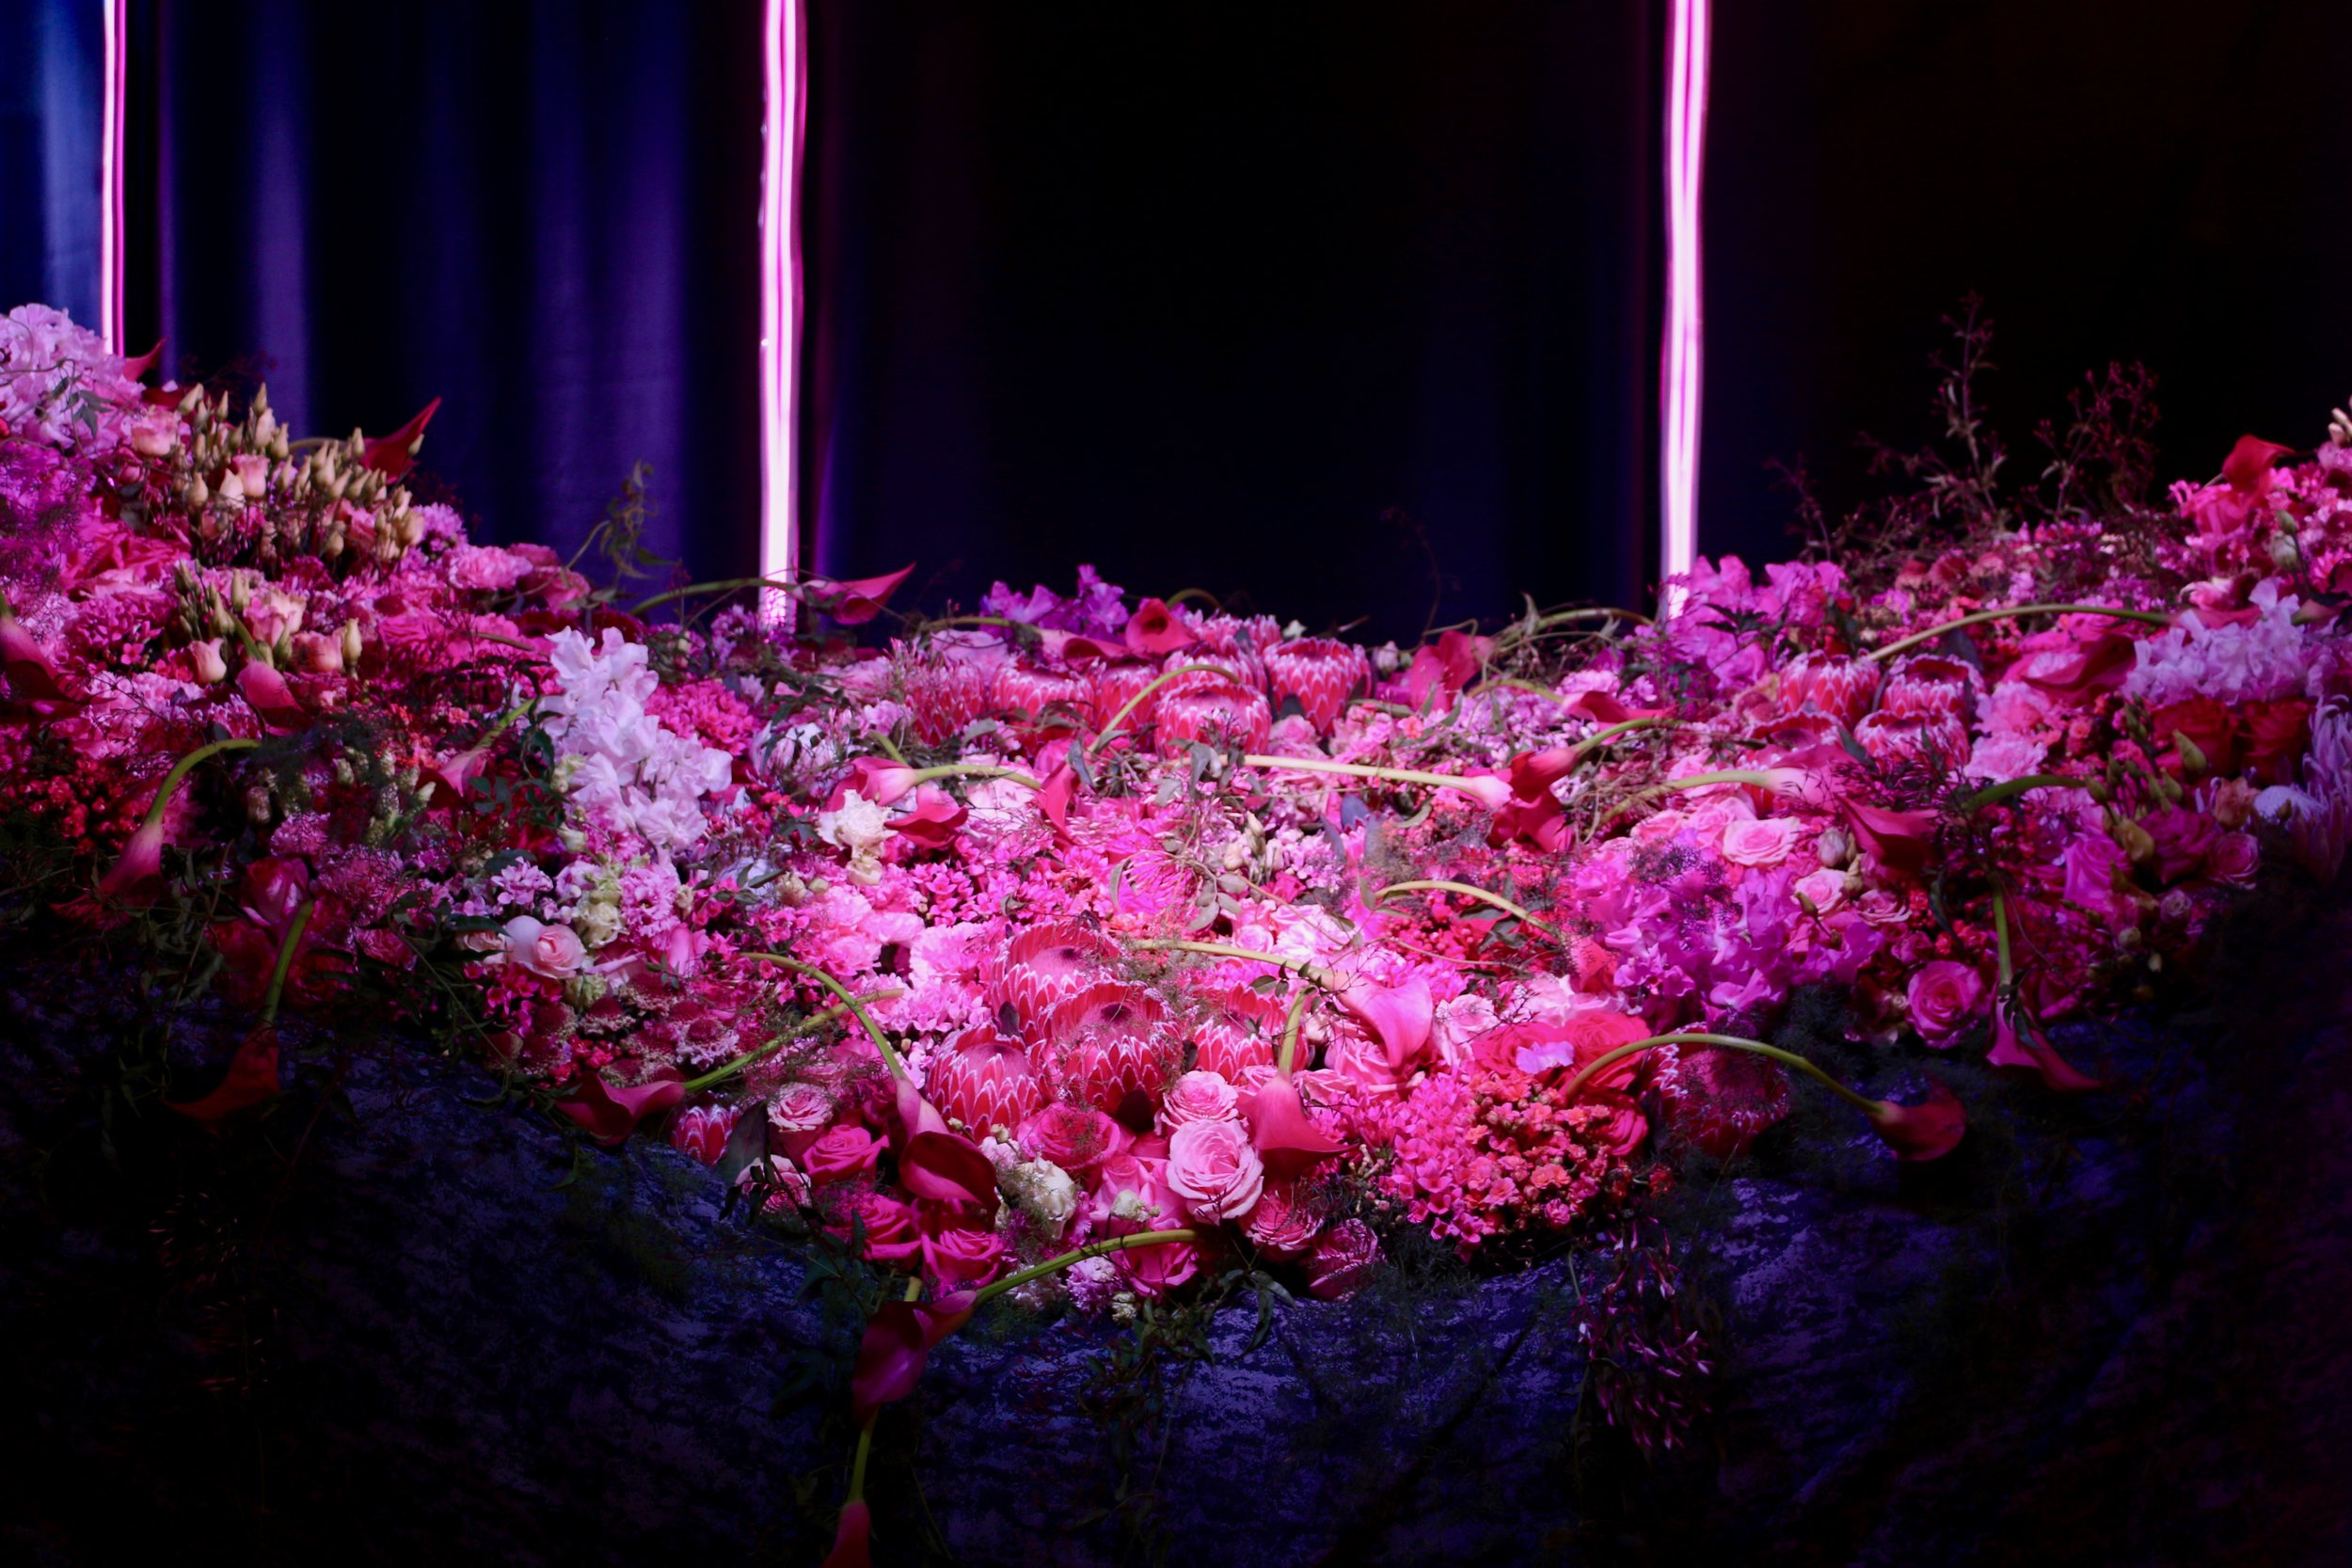 Titania's Bed. Philadelphia Flower Show, March 2019. Kristen Ghodsee